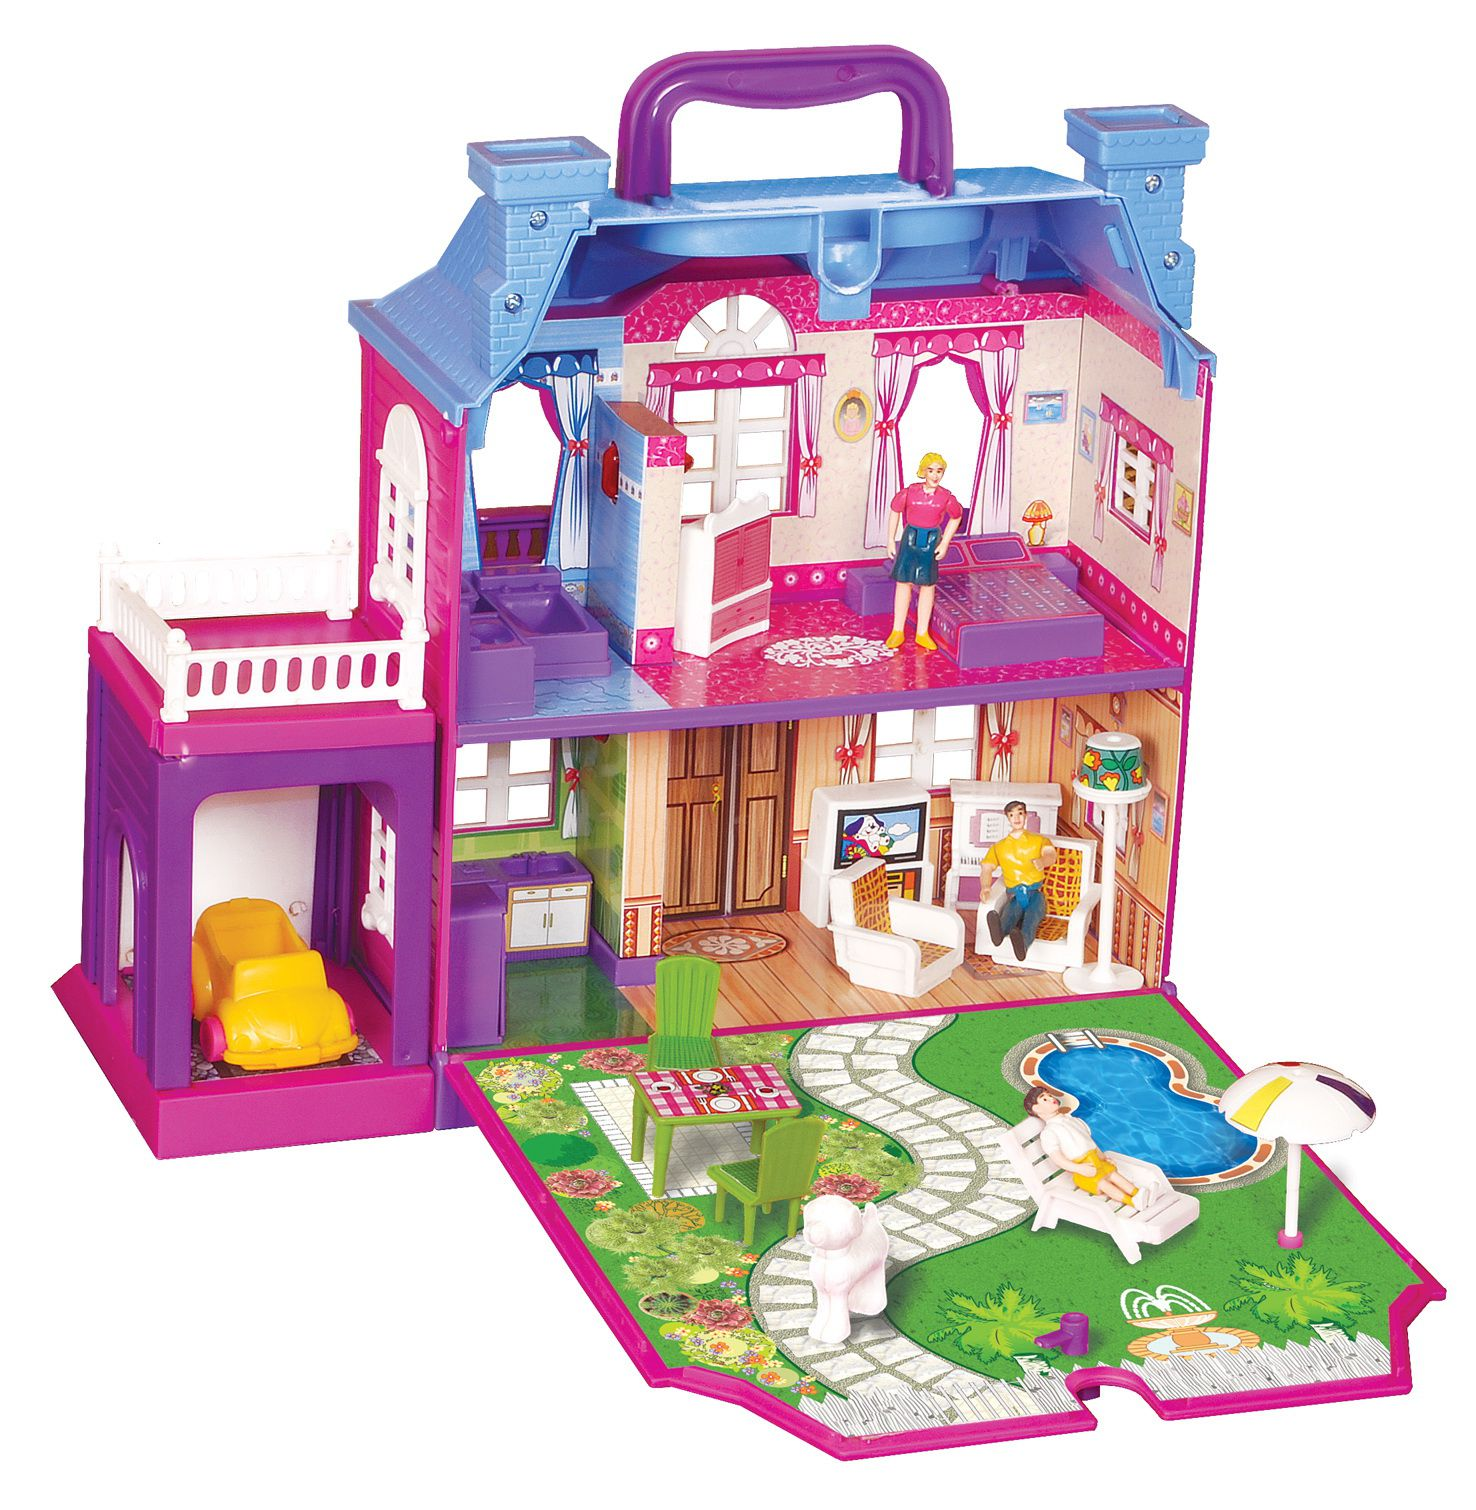 Dolls Price in India Buy Dolls and Doll Houses for Kids line at